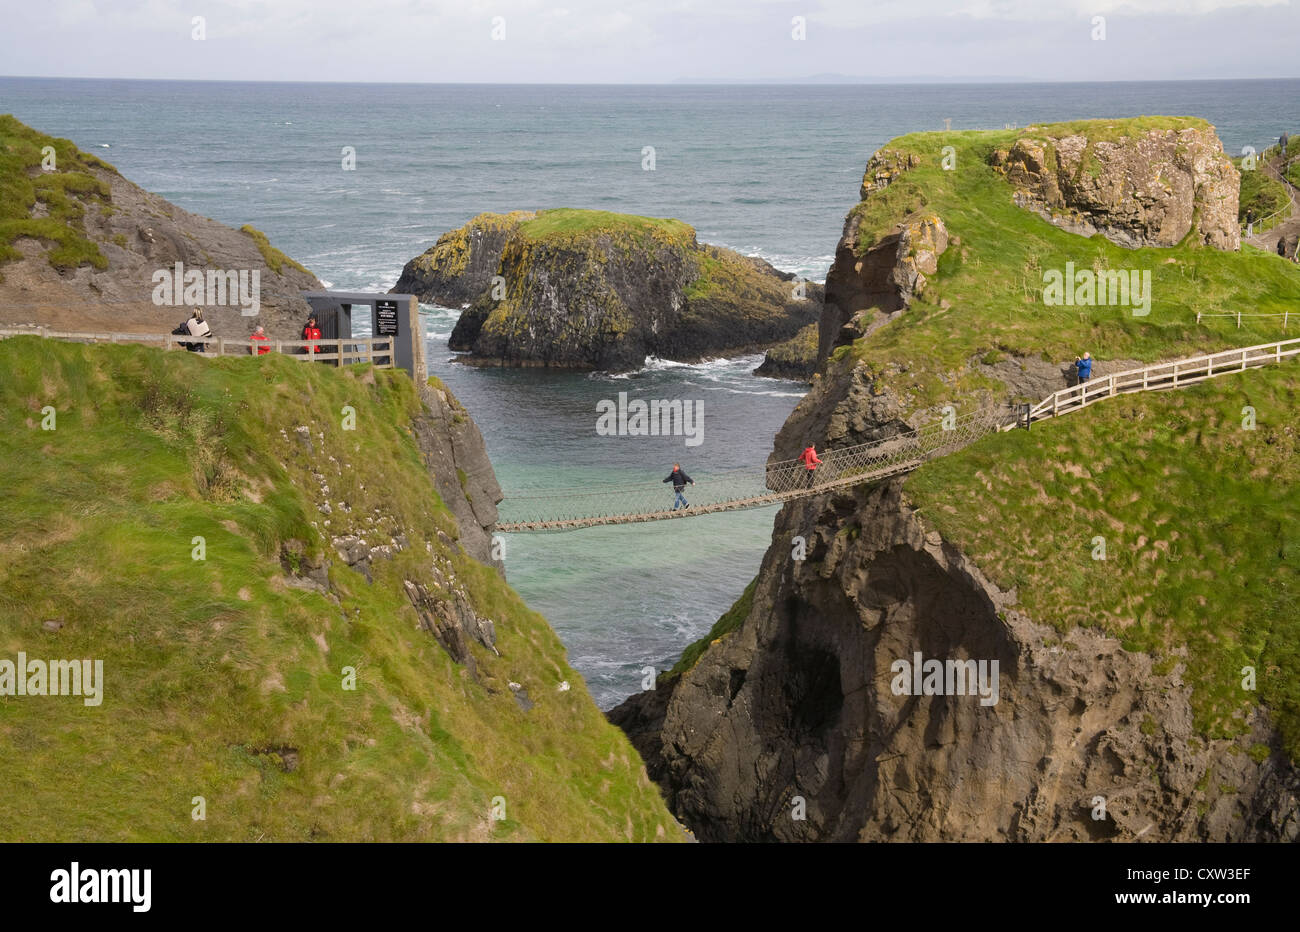 Ballintoy Co Antrim Northern Ireland Visitors crossing the popular Carrick-a-Rede rope bridge to the island - Stock Image